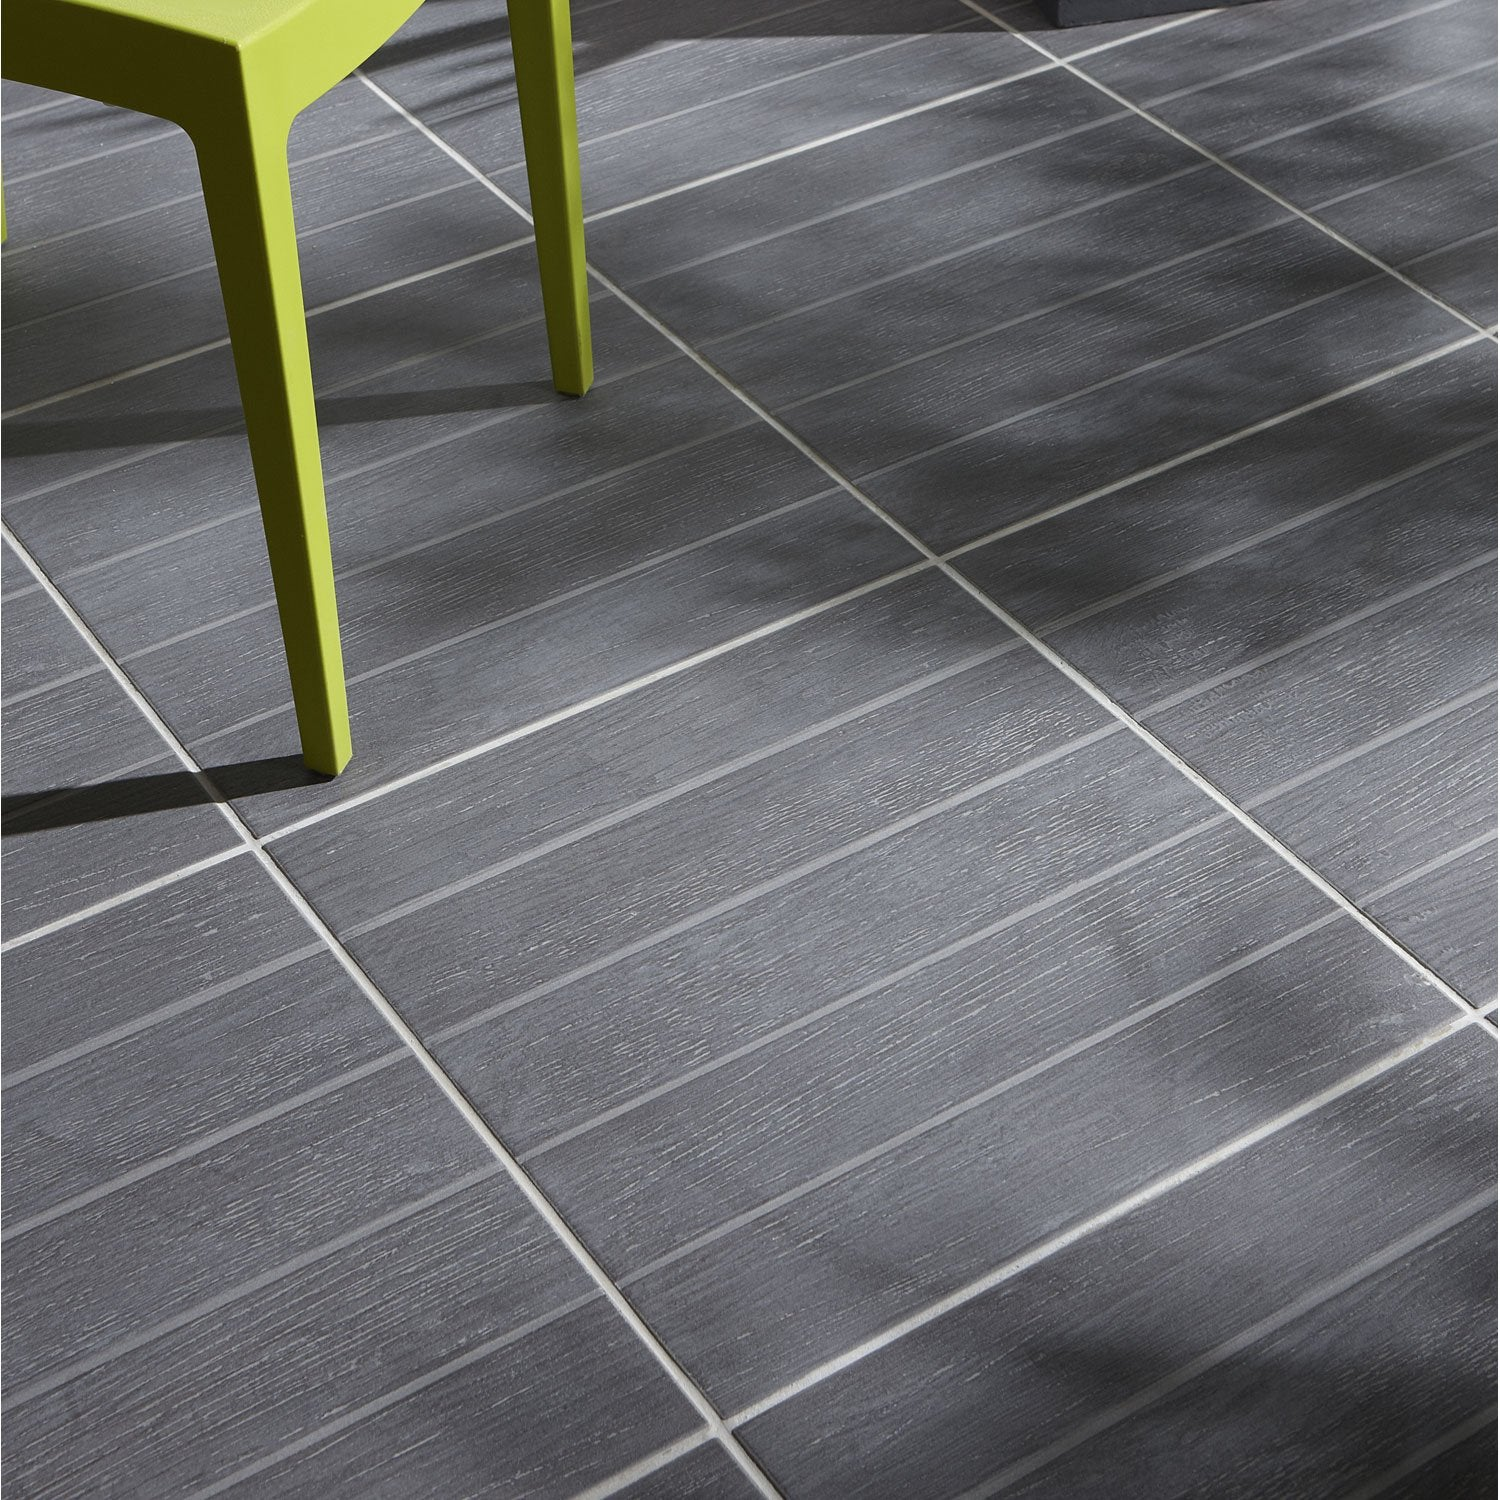 Carrelage sol gris anthracite devi gratuit colombes for Carrelage sol gris anthracite